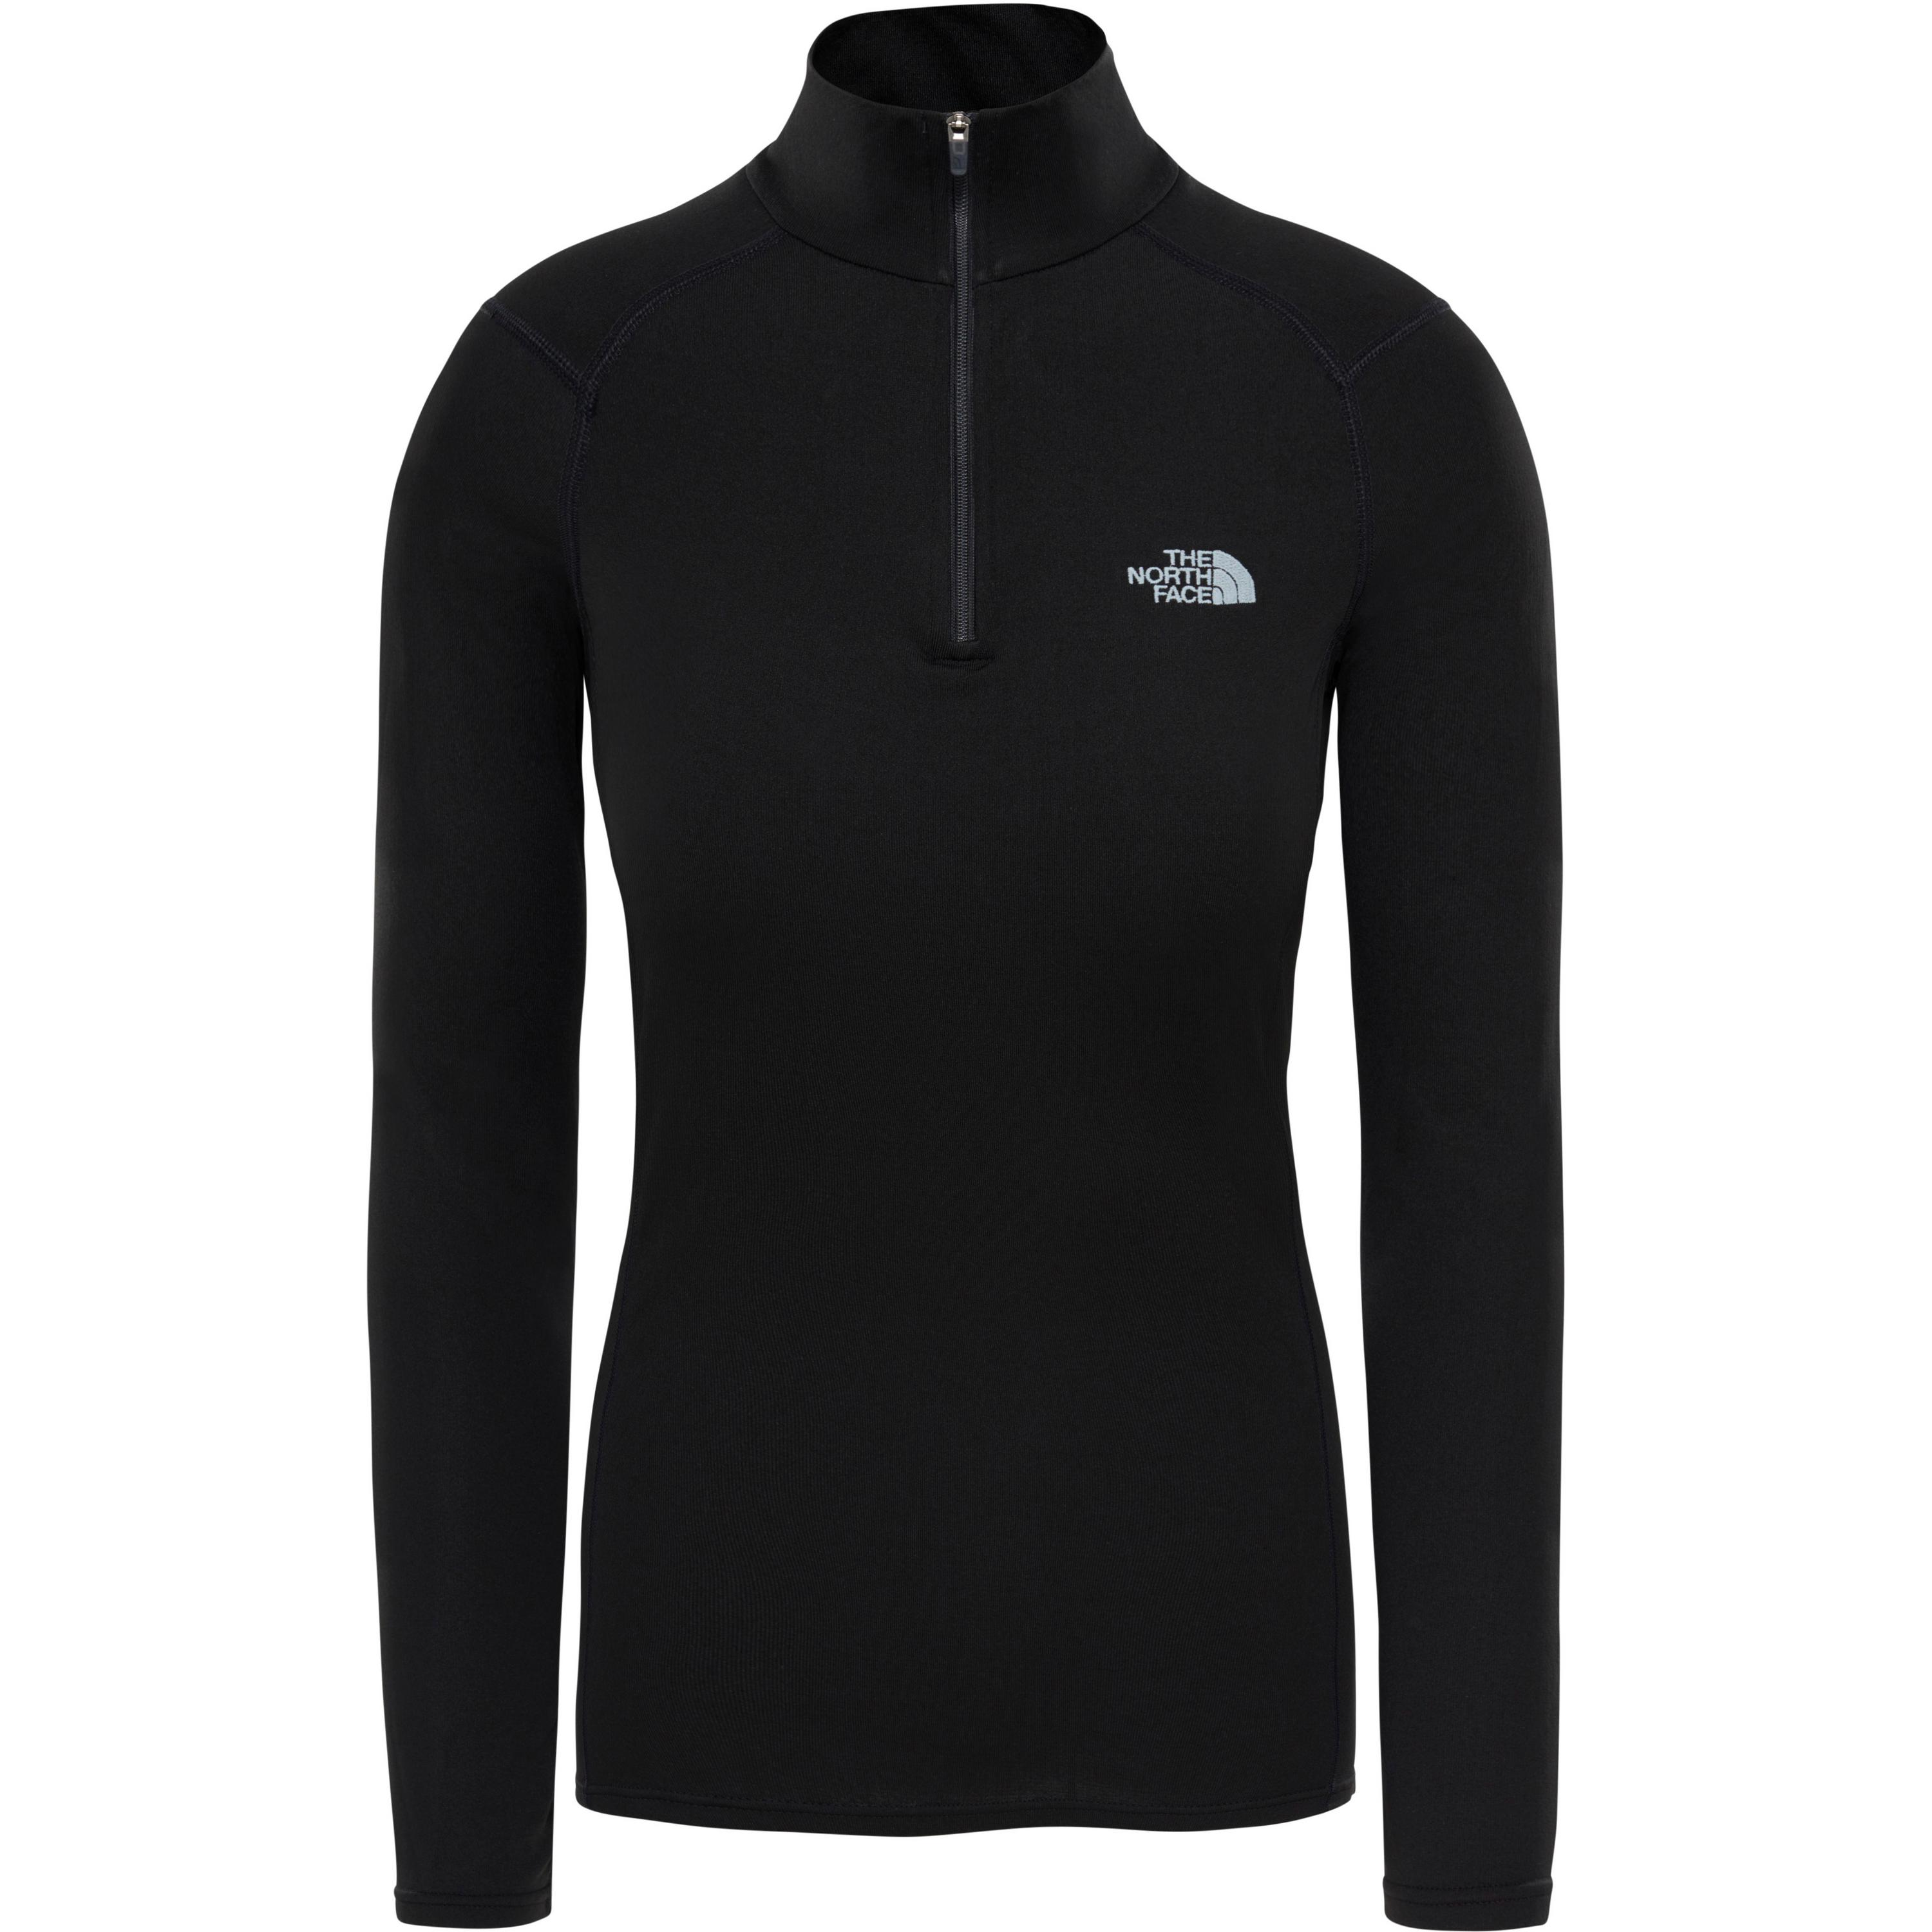 The North Face Funktionsshirt Damen Funktionsshirts S Normal